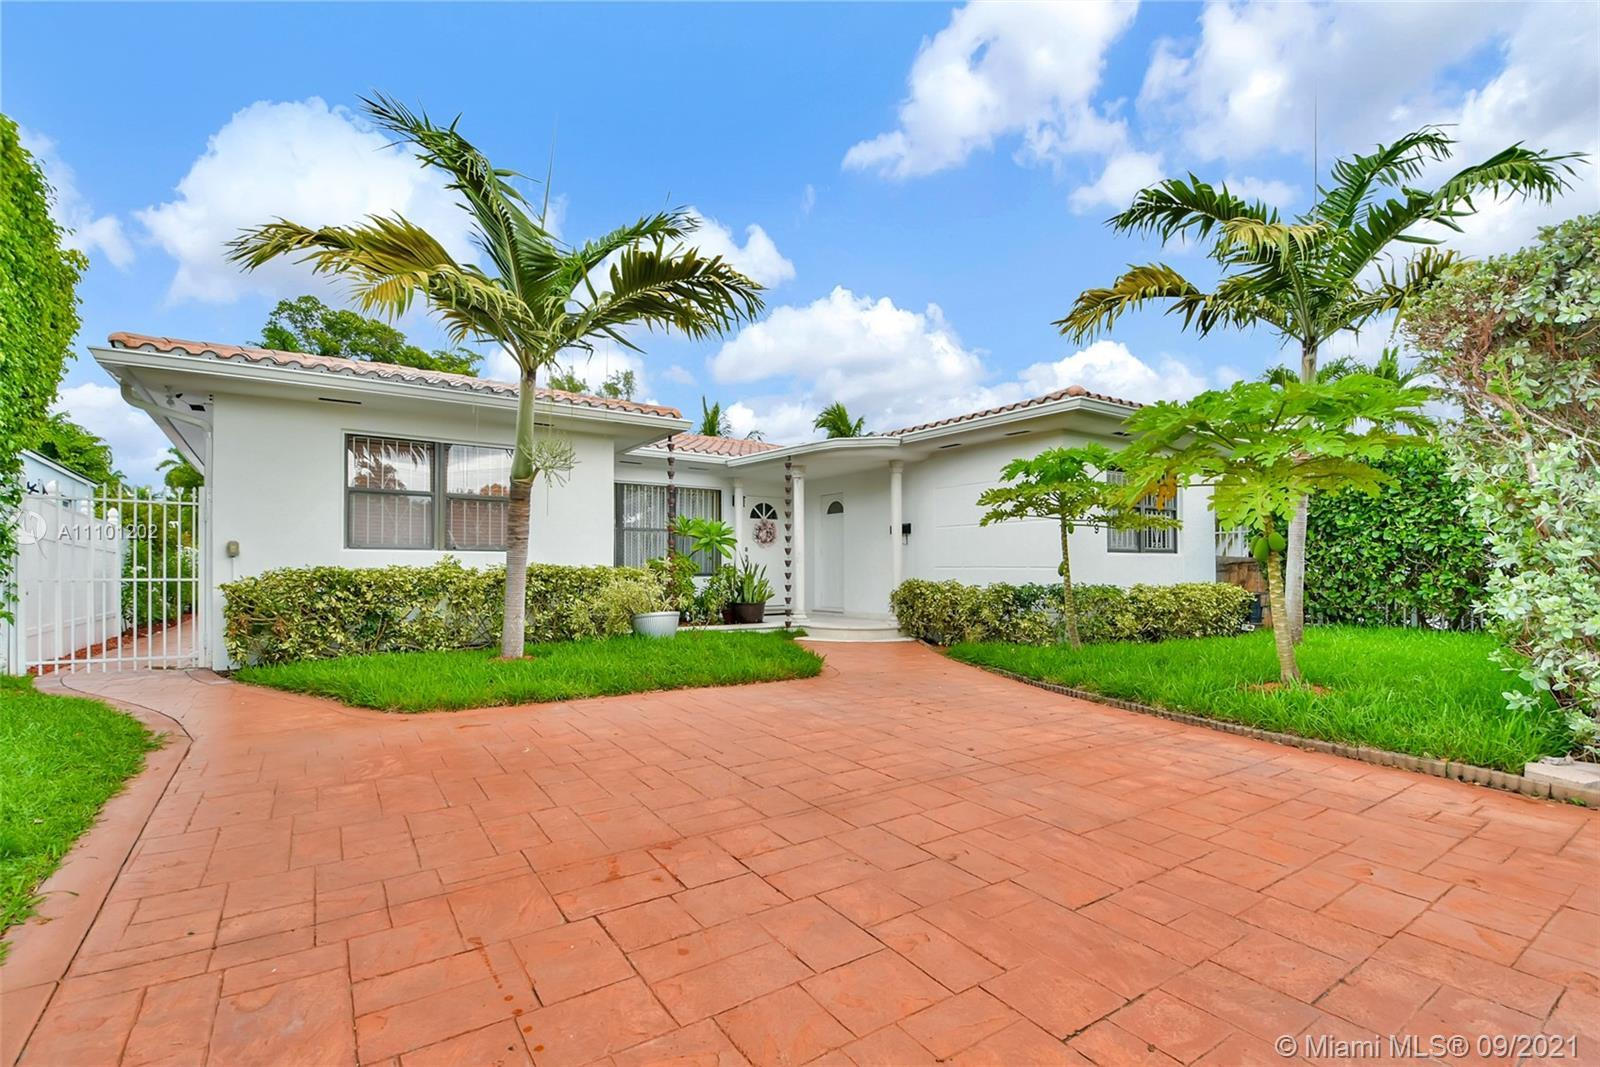 Amazing Home walking distance to the Beach and Normandy Shores Golf Course.This House features 6/3,